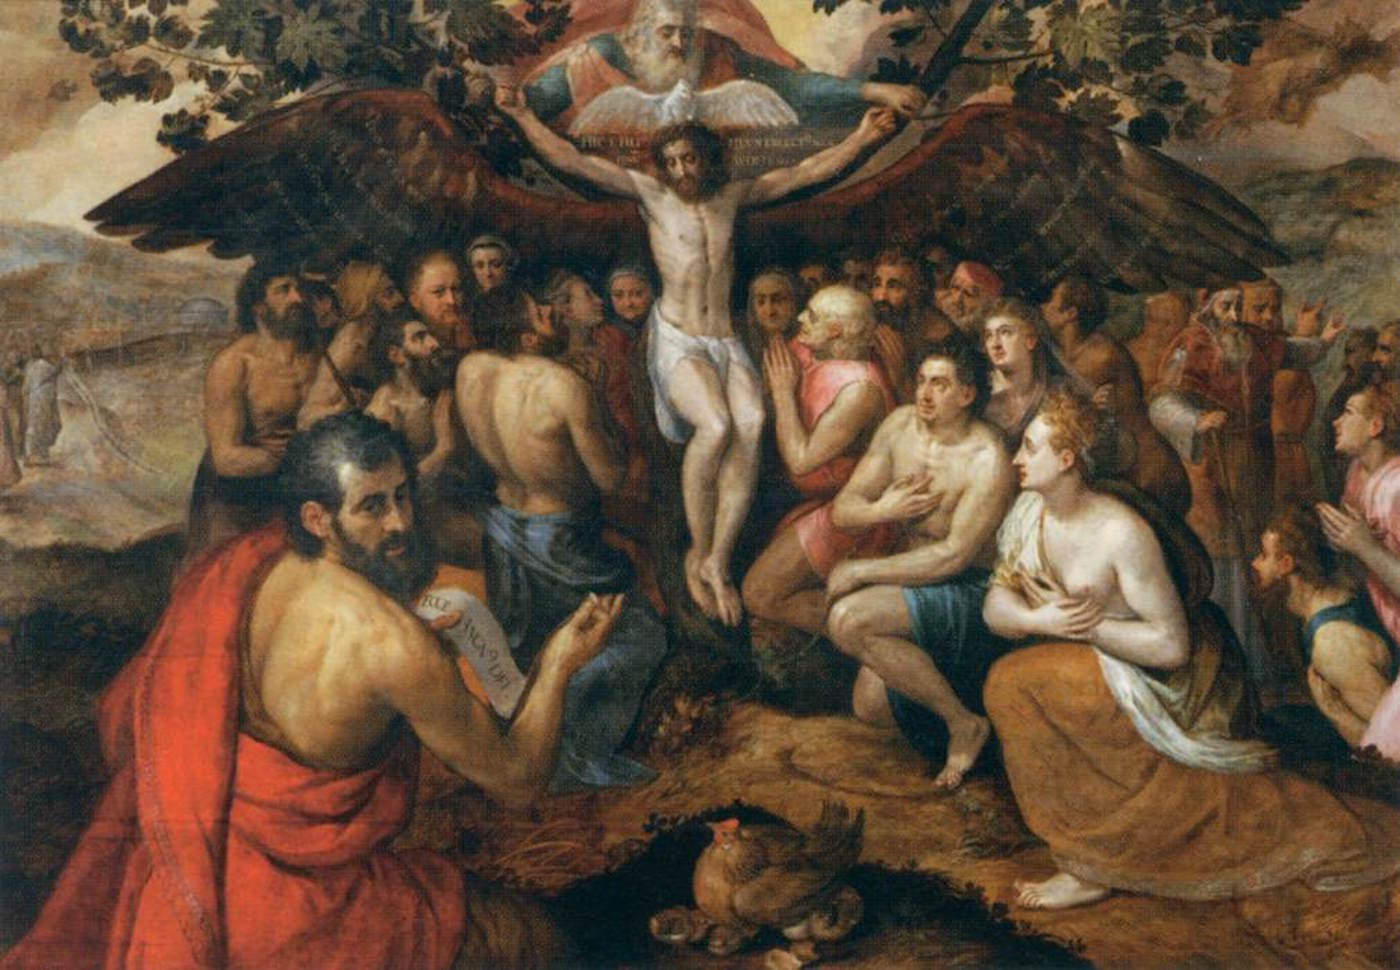 Frans Floris painting, The Sacrifice of Jesus Christ Son of God Gathering and Protecting Mankind